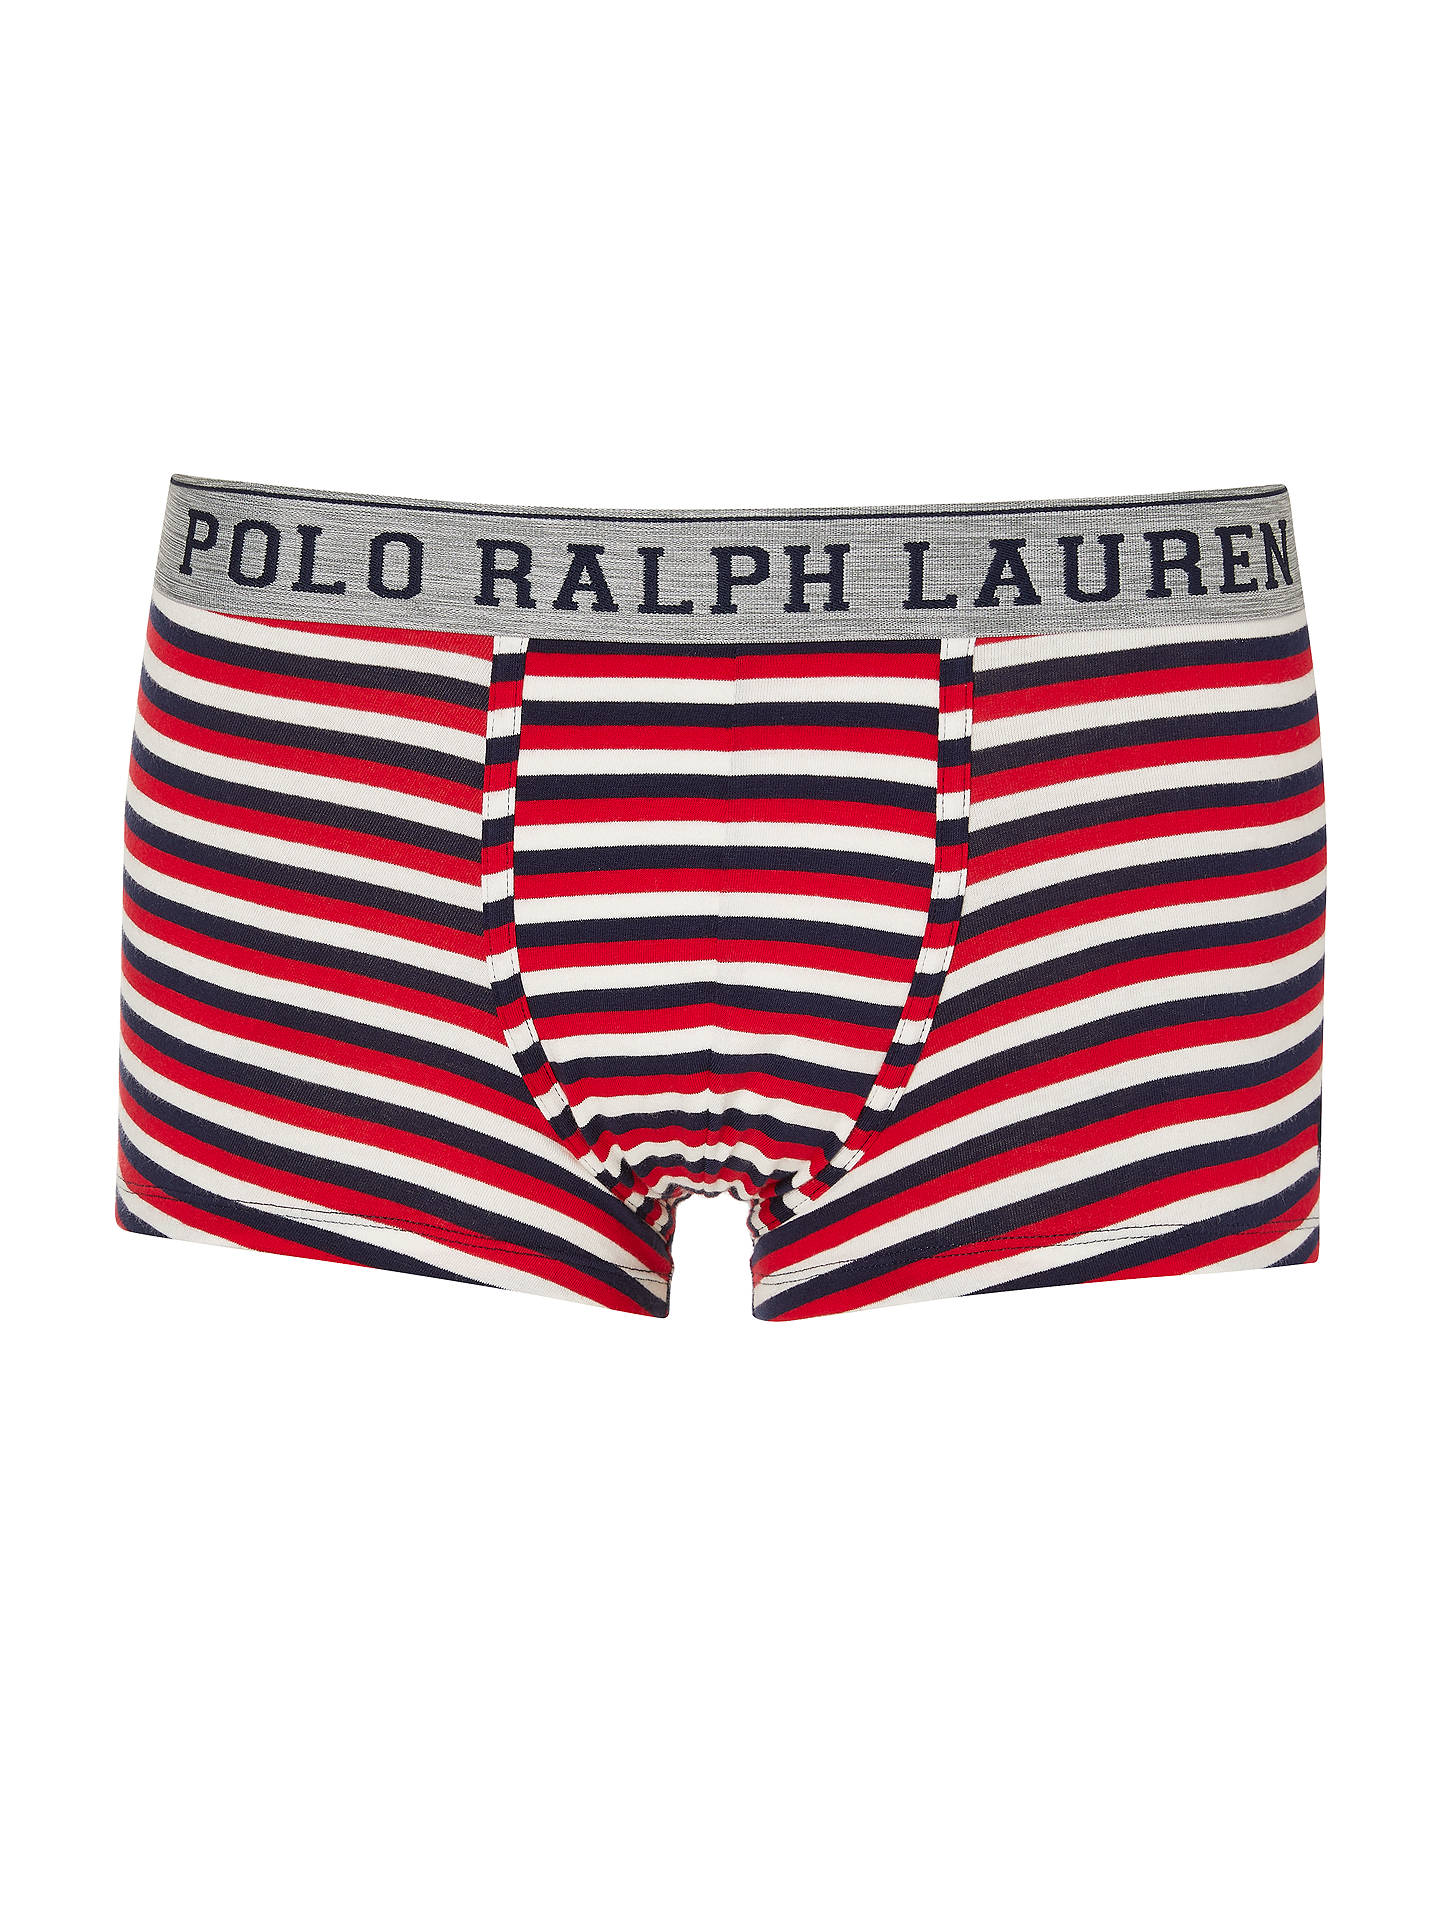 Buy Polo Ralph Lauren Multi Stripe Trunks, Red/White, S Online at johnlewis.com